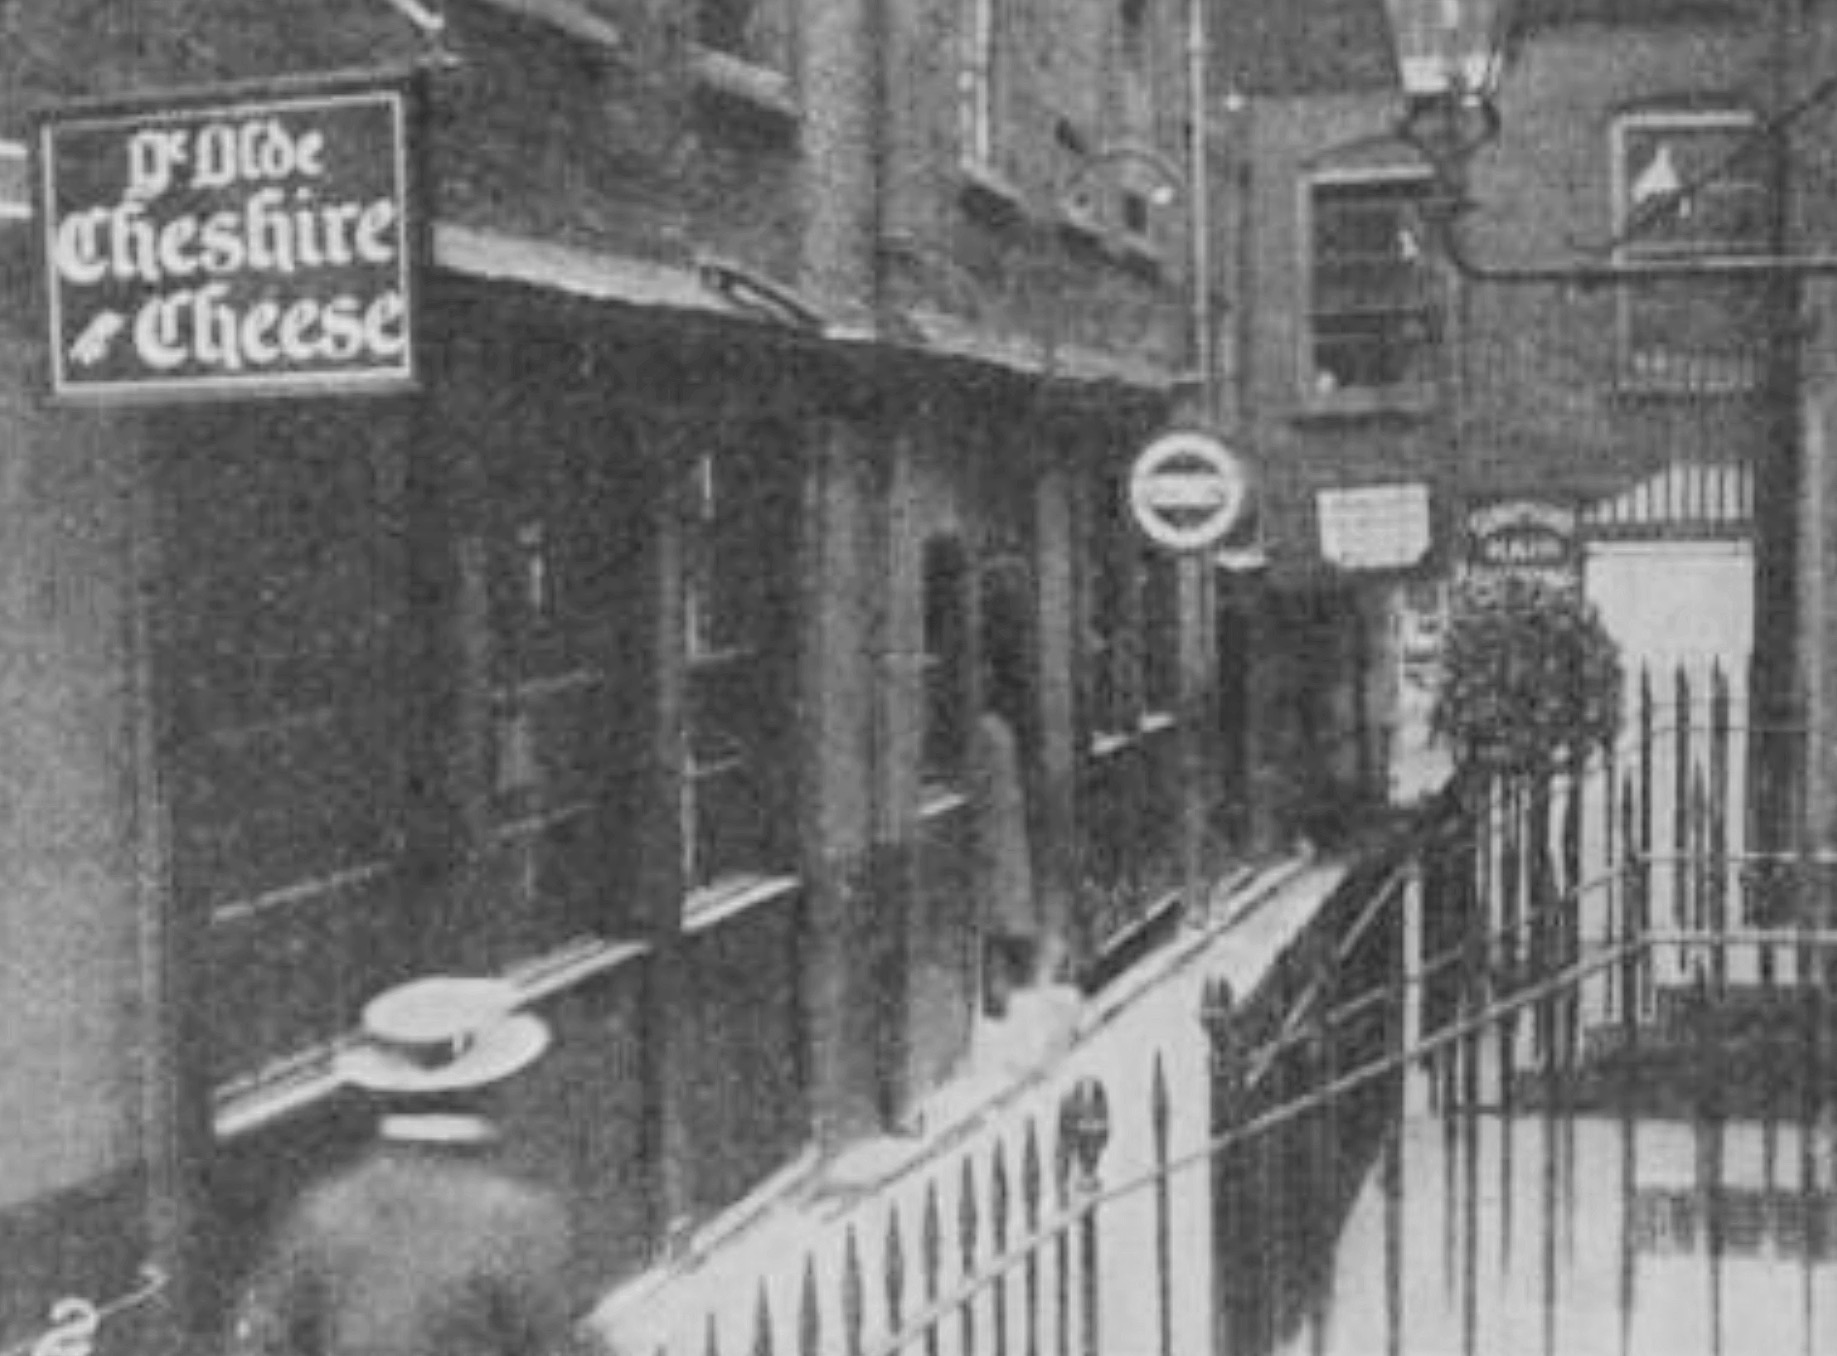 Olde Cheshire Cheese 1909